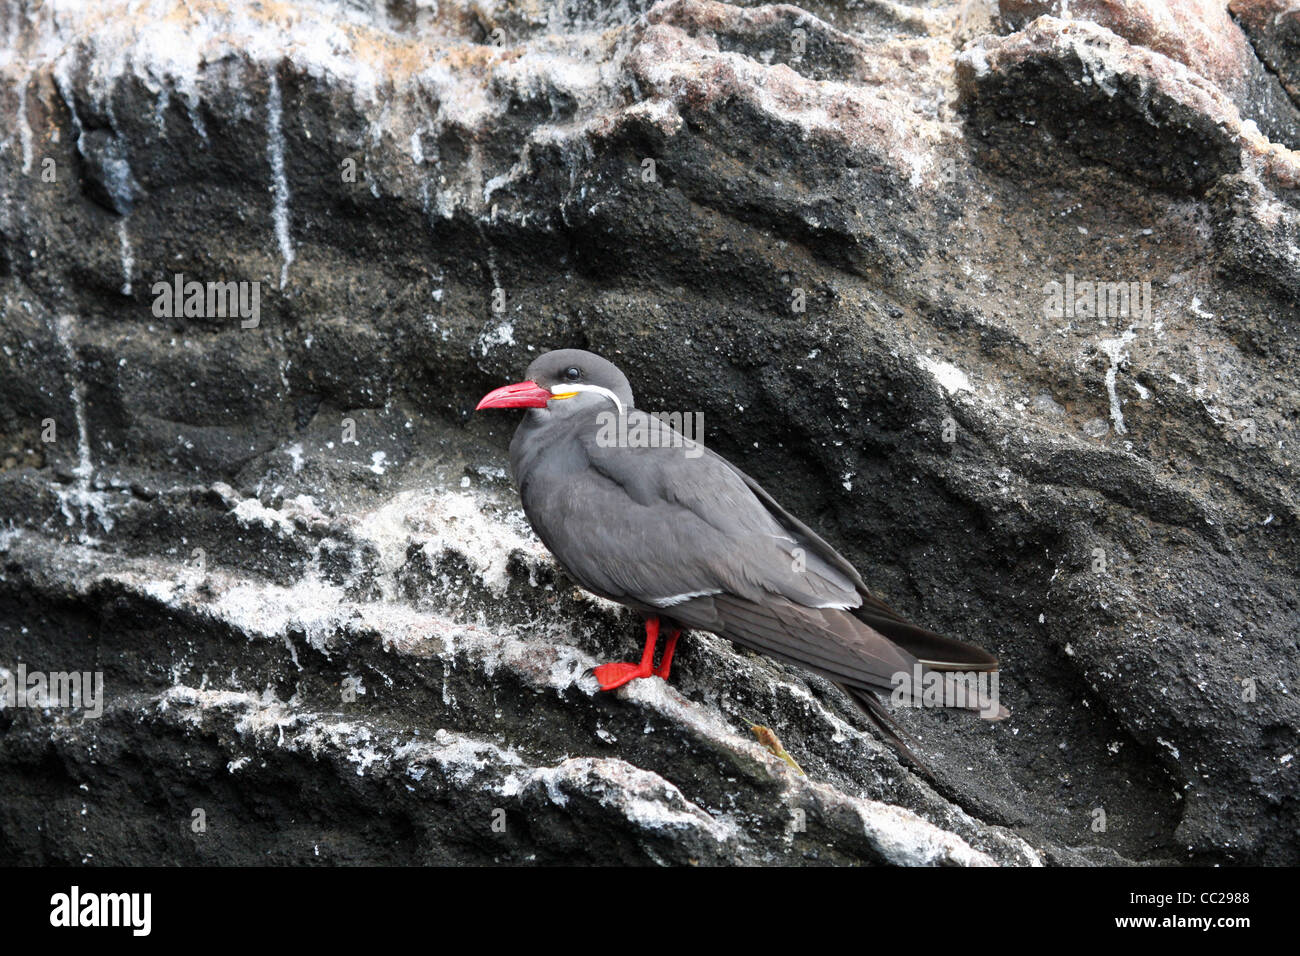 Inca Tern at Caeta Tagus, Isla Isabela, Galapagos - 'only the second ever recorded sighting in the Galapagos' - Stock Image